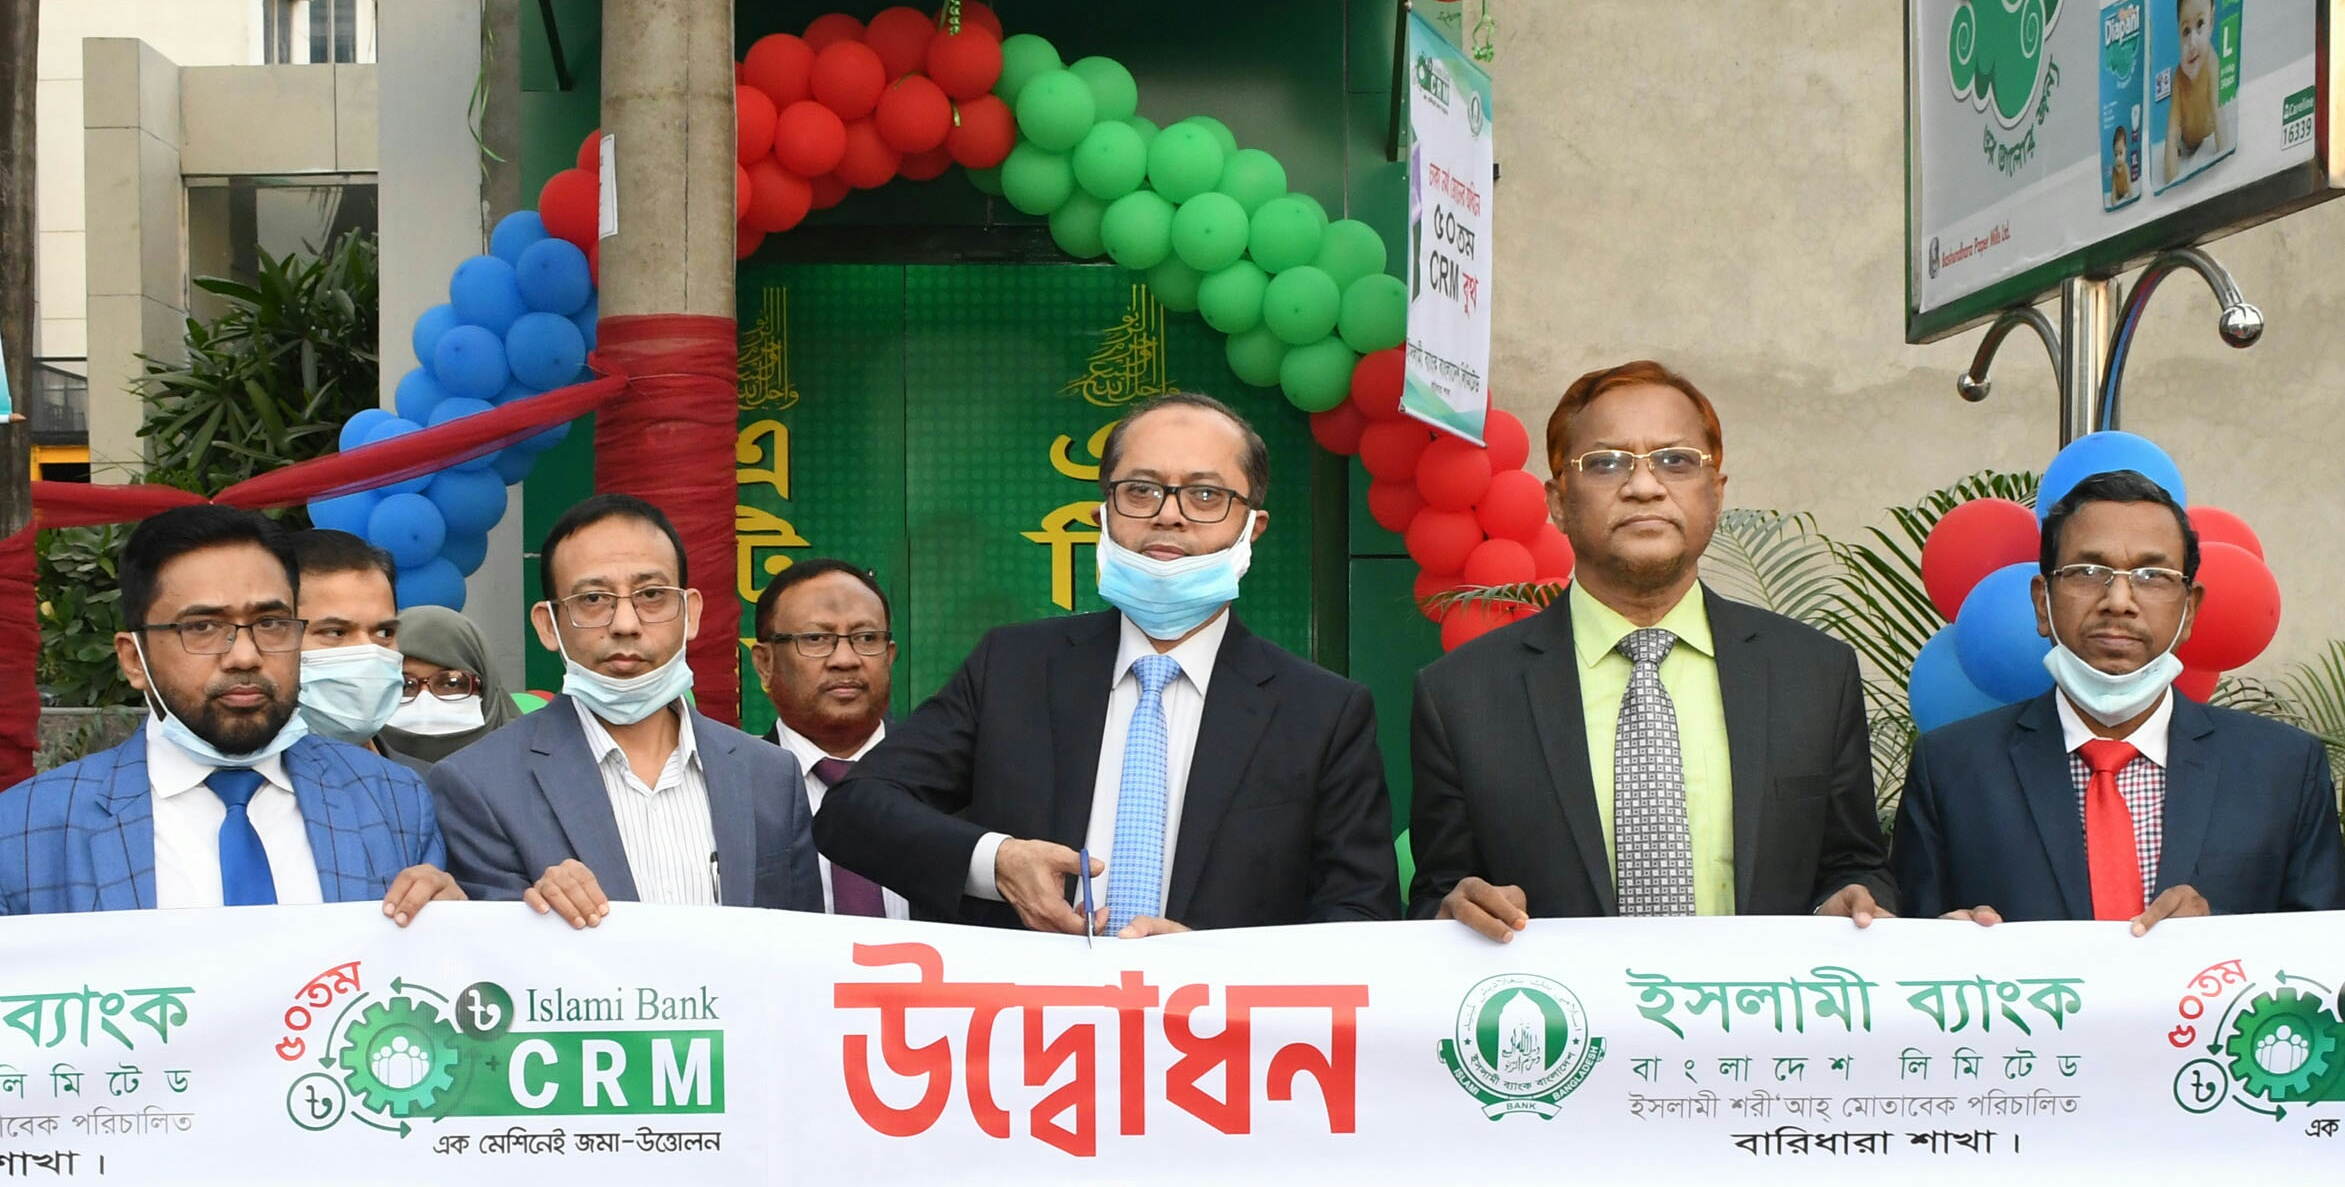 Mohammed Monirul Moula, Additional Managing Director of Islami Bank Bangladesh Limited, inaugurating its Cash Recycling Machine Booth at Basundhara Residential Area in the capital recently. Mizanur Rahman, Senior Executive Vice President and Md Mozahidul Islam, Head of Baridhara Branch, among others, were present.